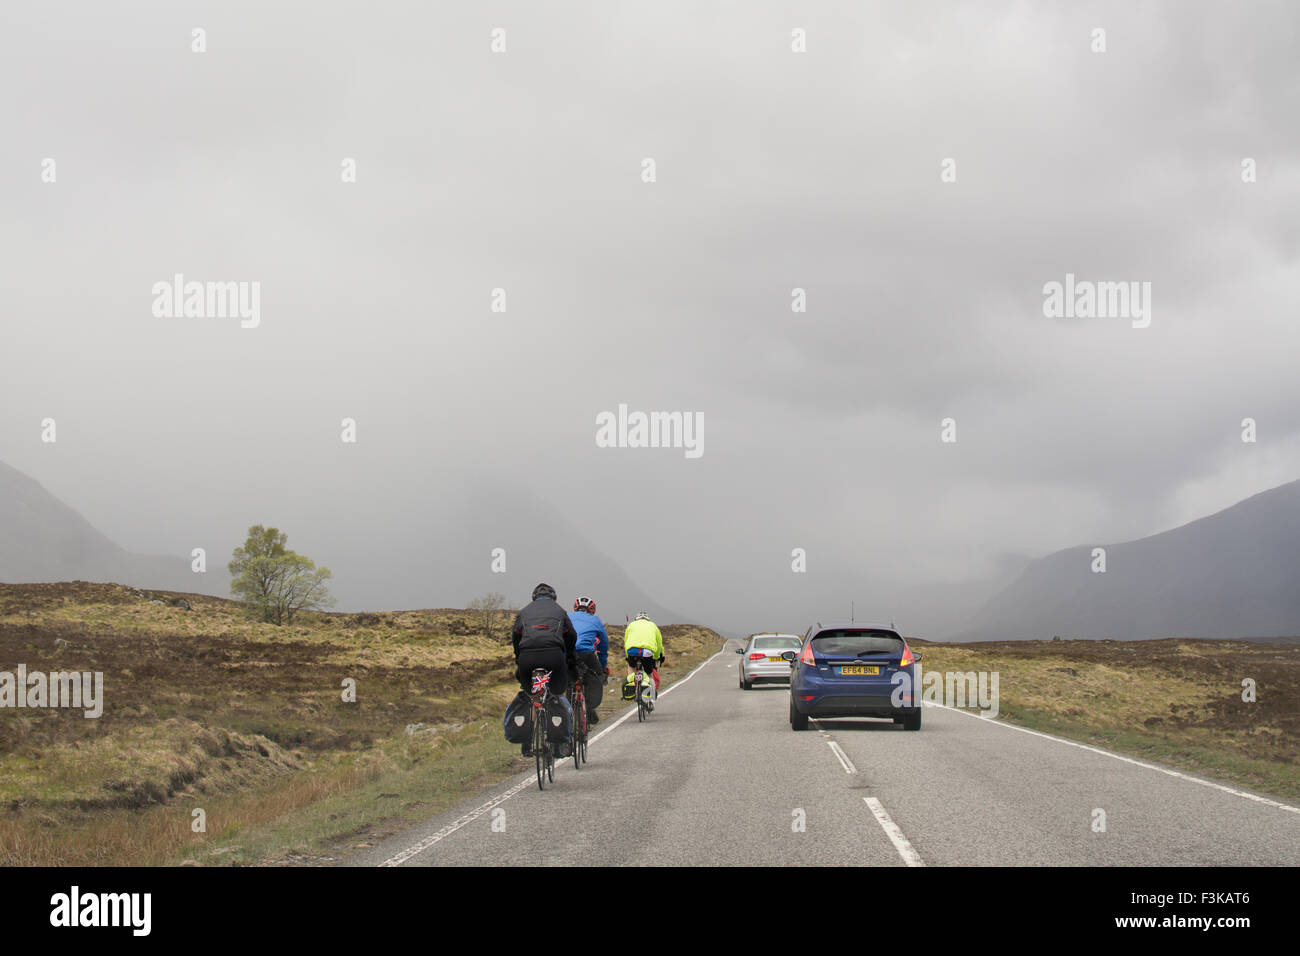 cars giving cyclists plenty of space as they overtake on the A82 road through Glencoe, Scotland, UK - Stock Image